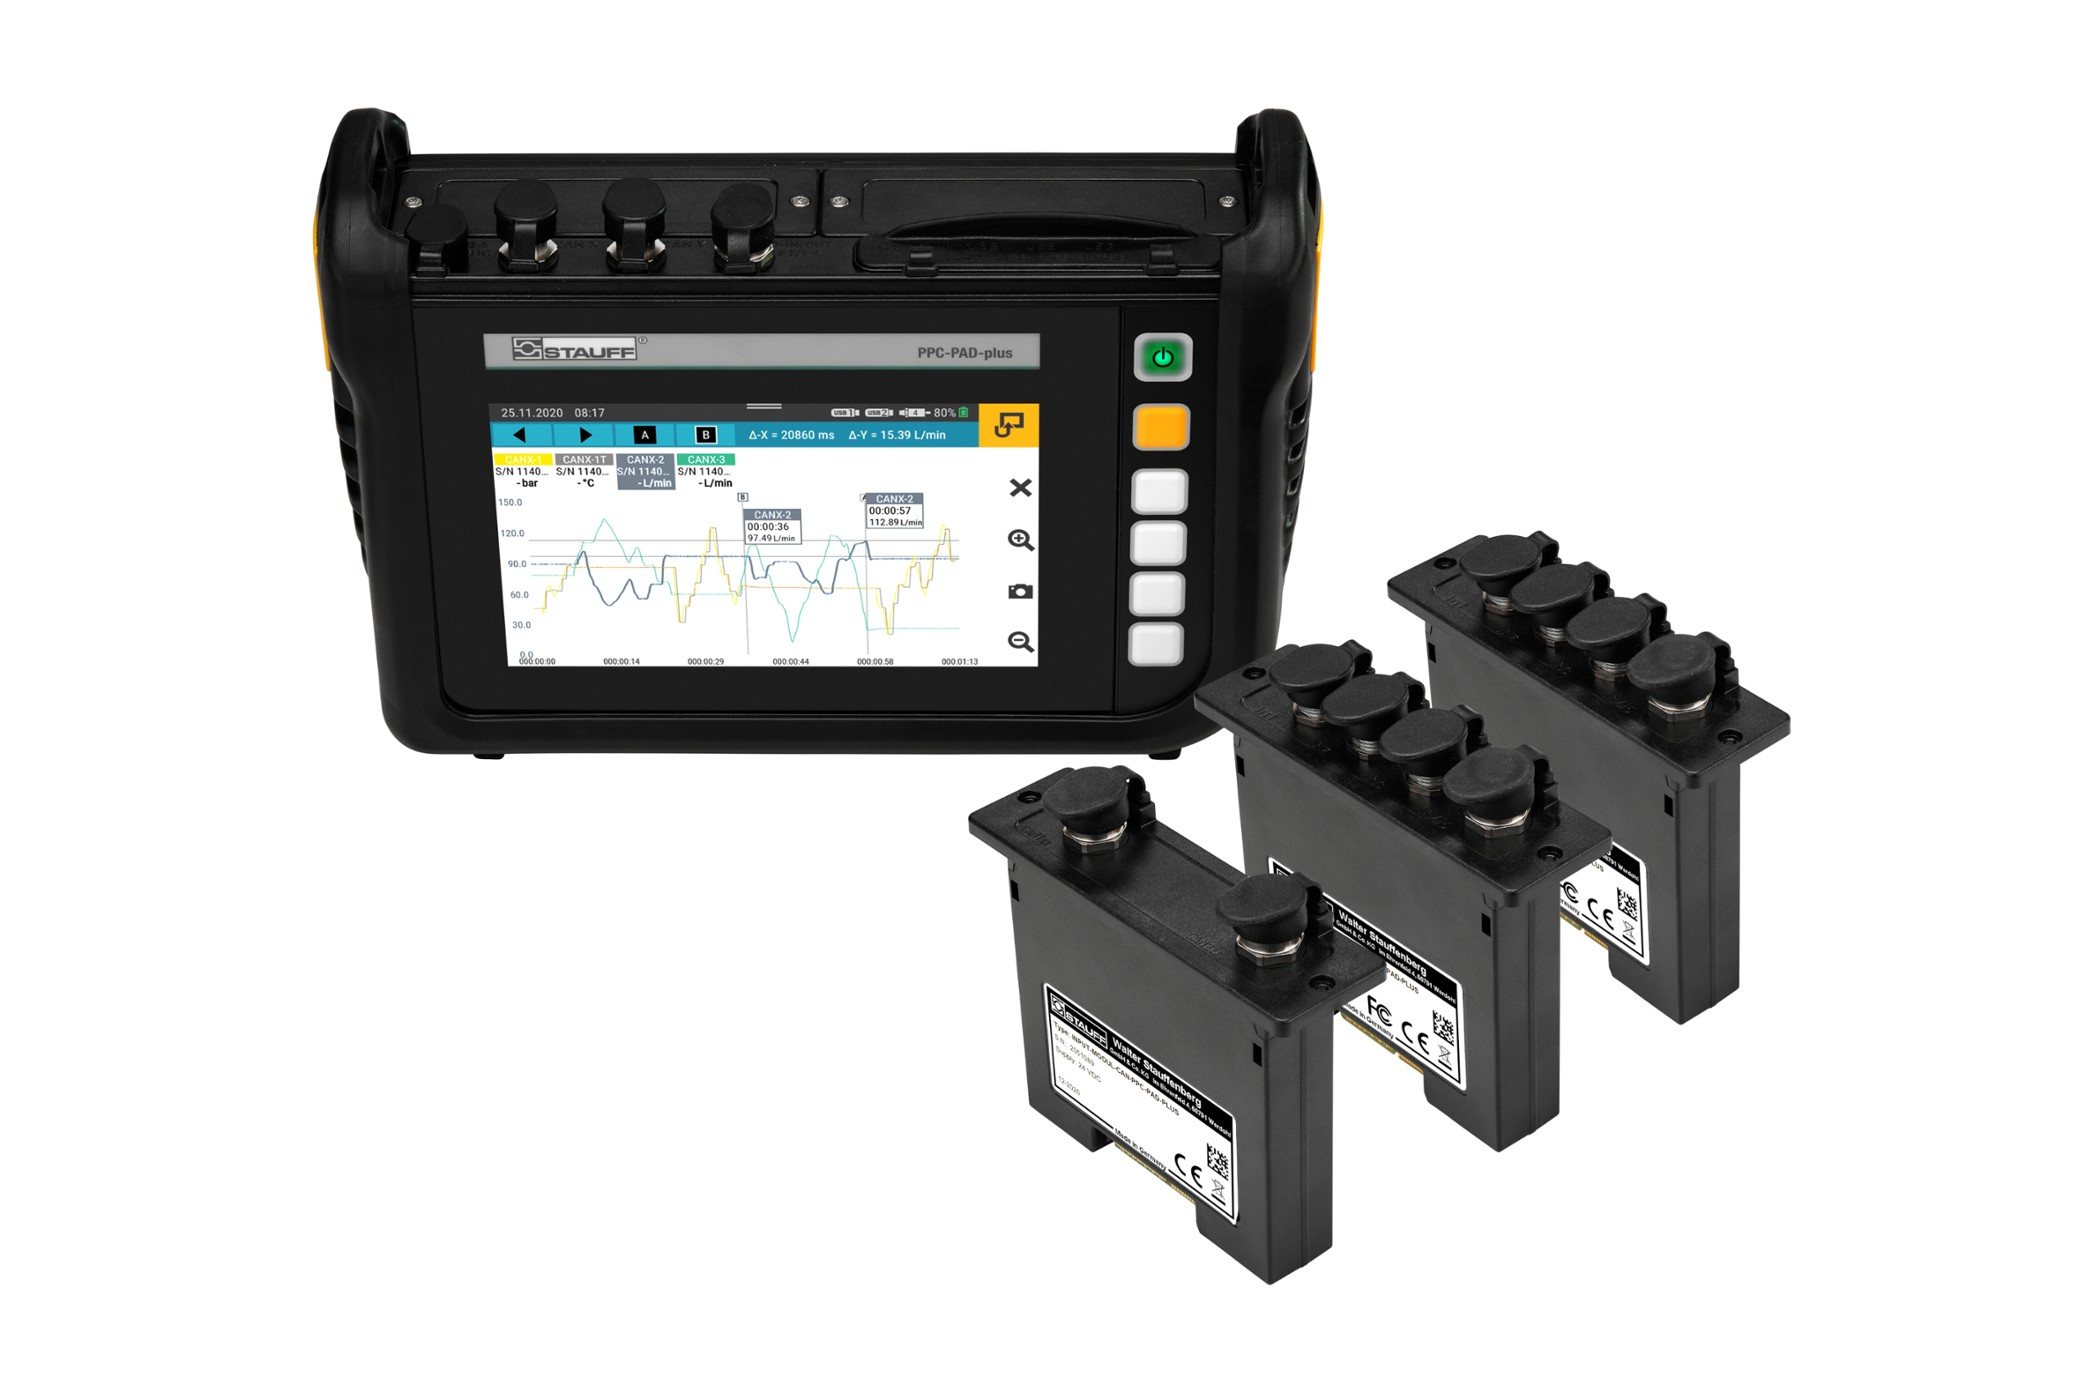 Hand-held hydraulic tester with exchangeable input modules